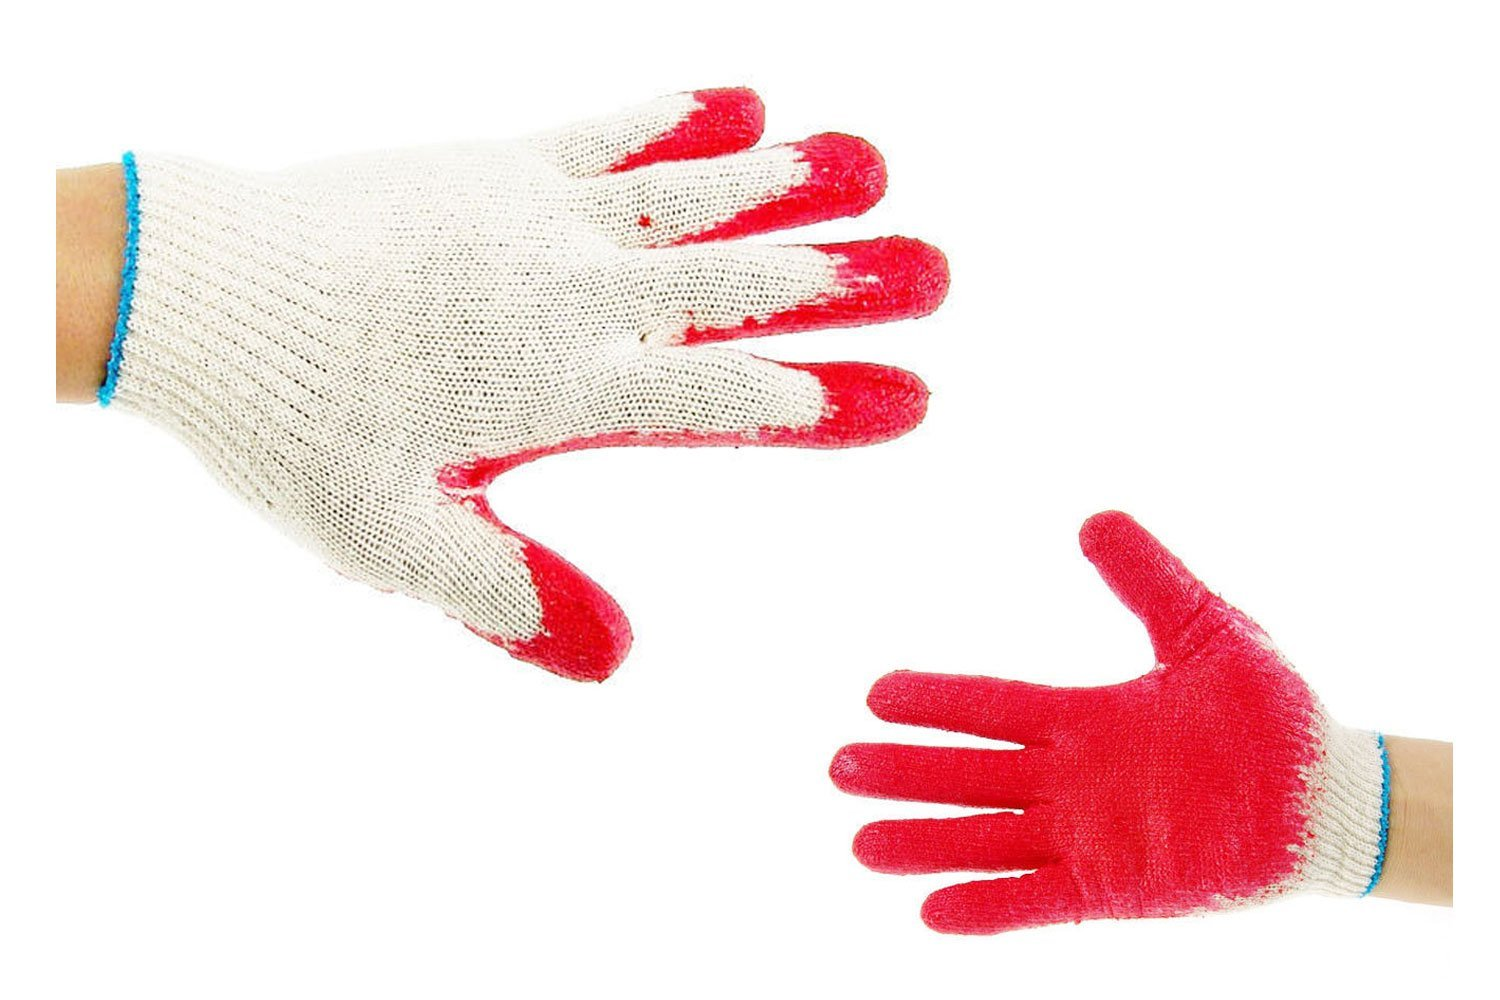 100 Pairs String Knit Red Palm Latex Dipped Gloves, Made in Korea